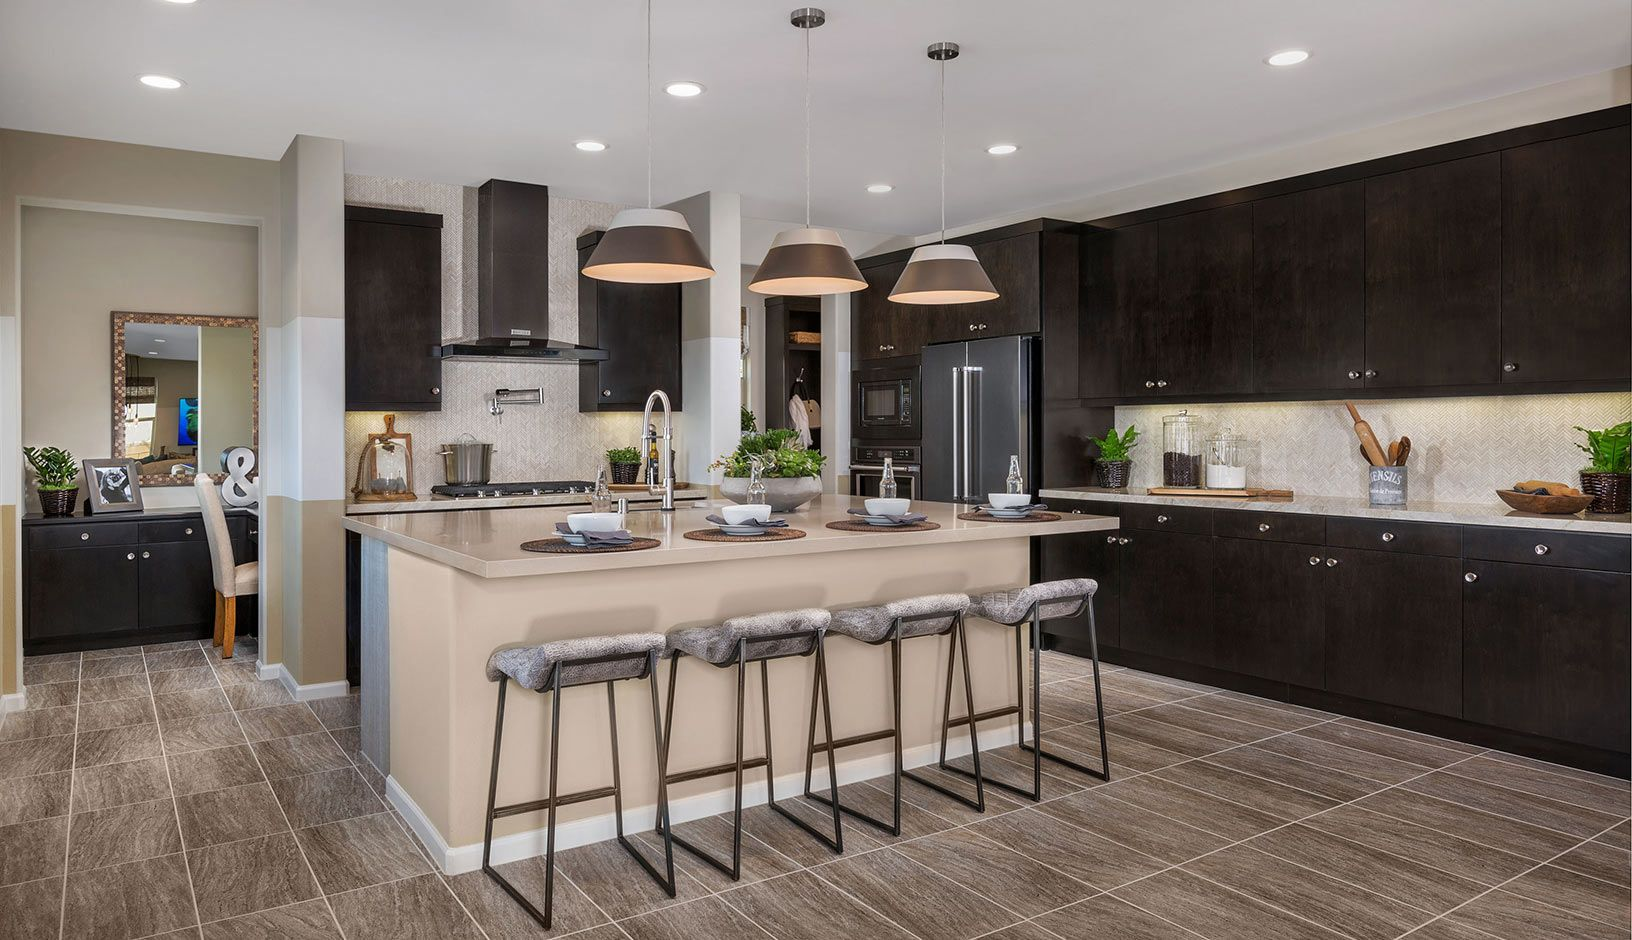 Kitchen featured in the Residence 2 By TRI Pointe Homes in Los Angeles, CA